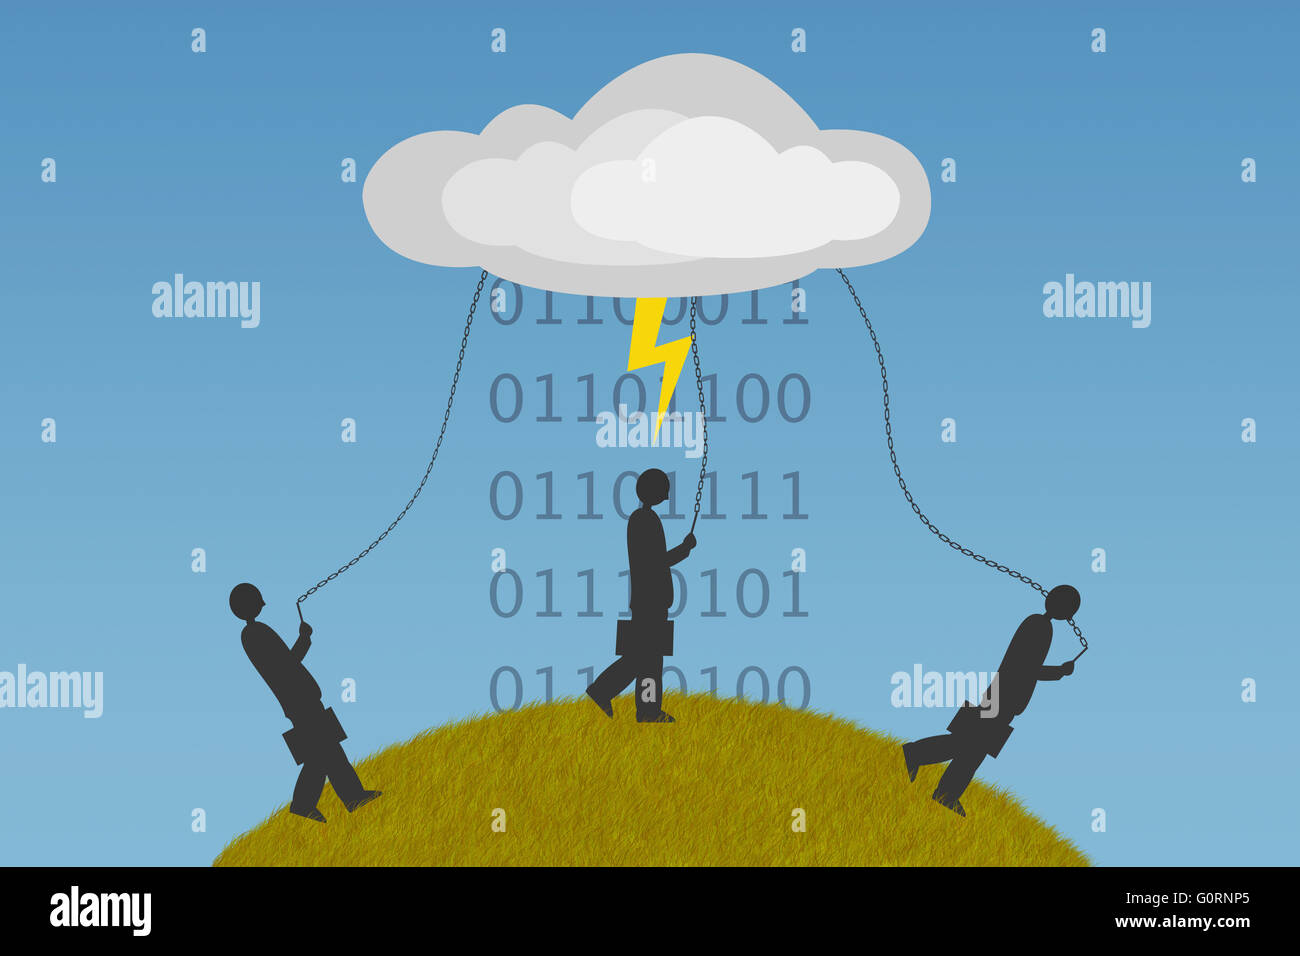 Humanity became dependent on cloud computing - Stock Image